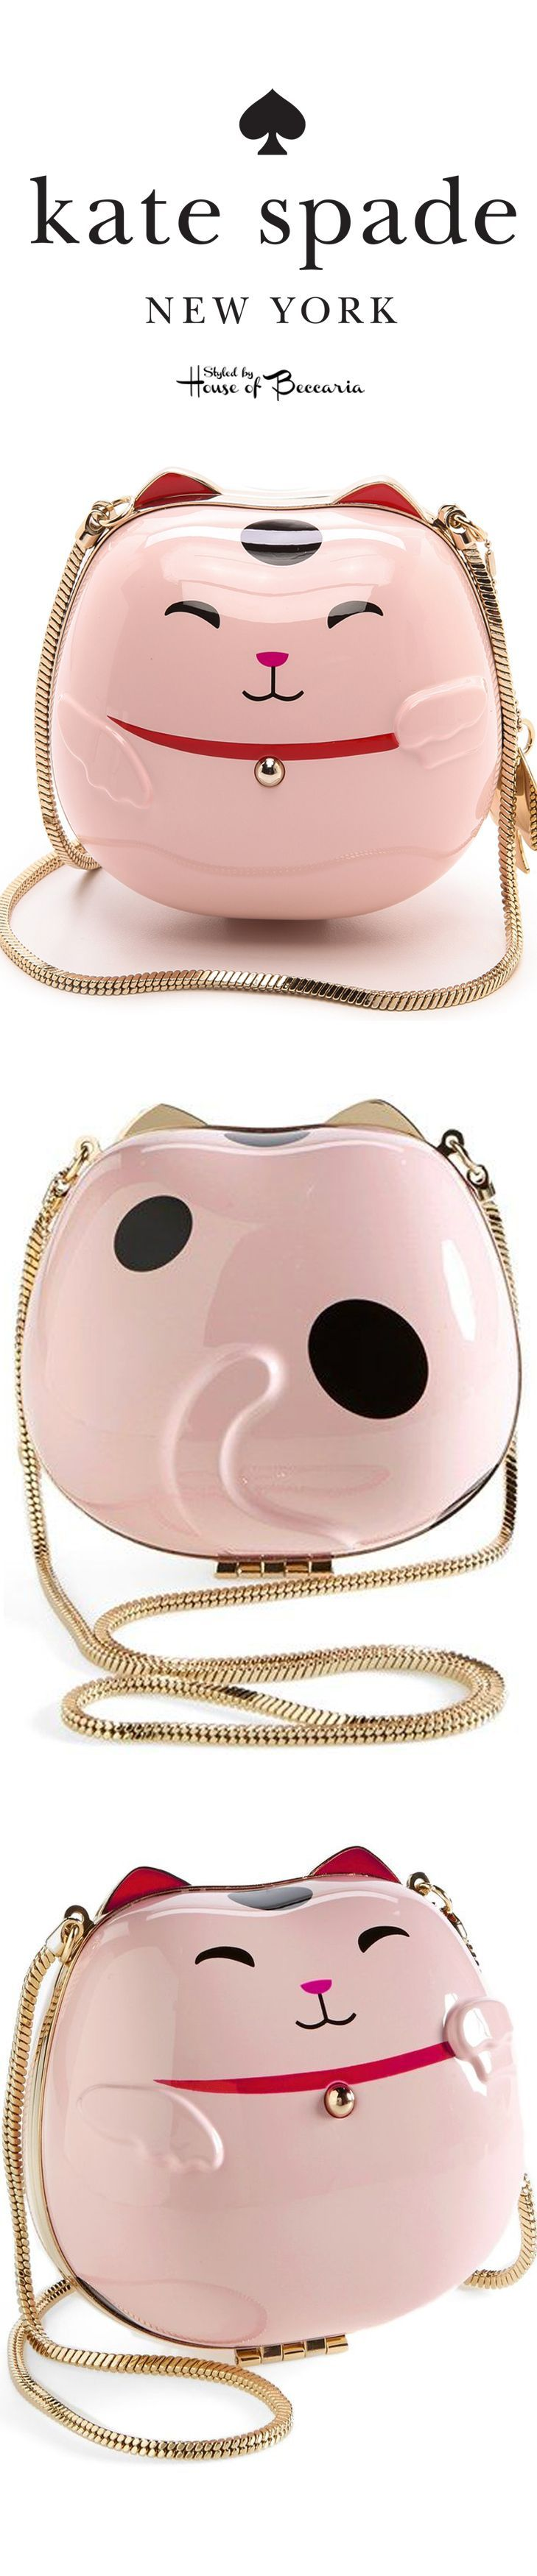 ~Kate Spade 'Hello Tokyo' Lucky Cat Clutch | House of Beccaria